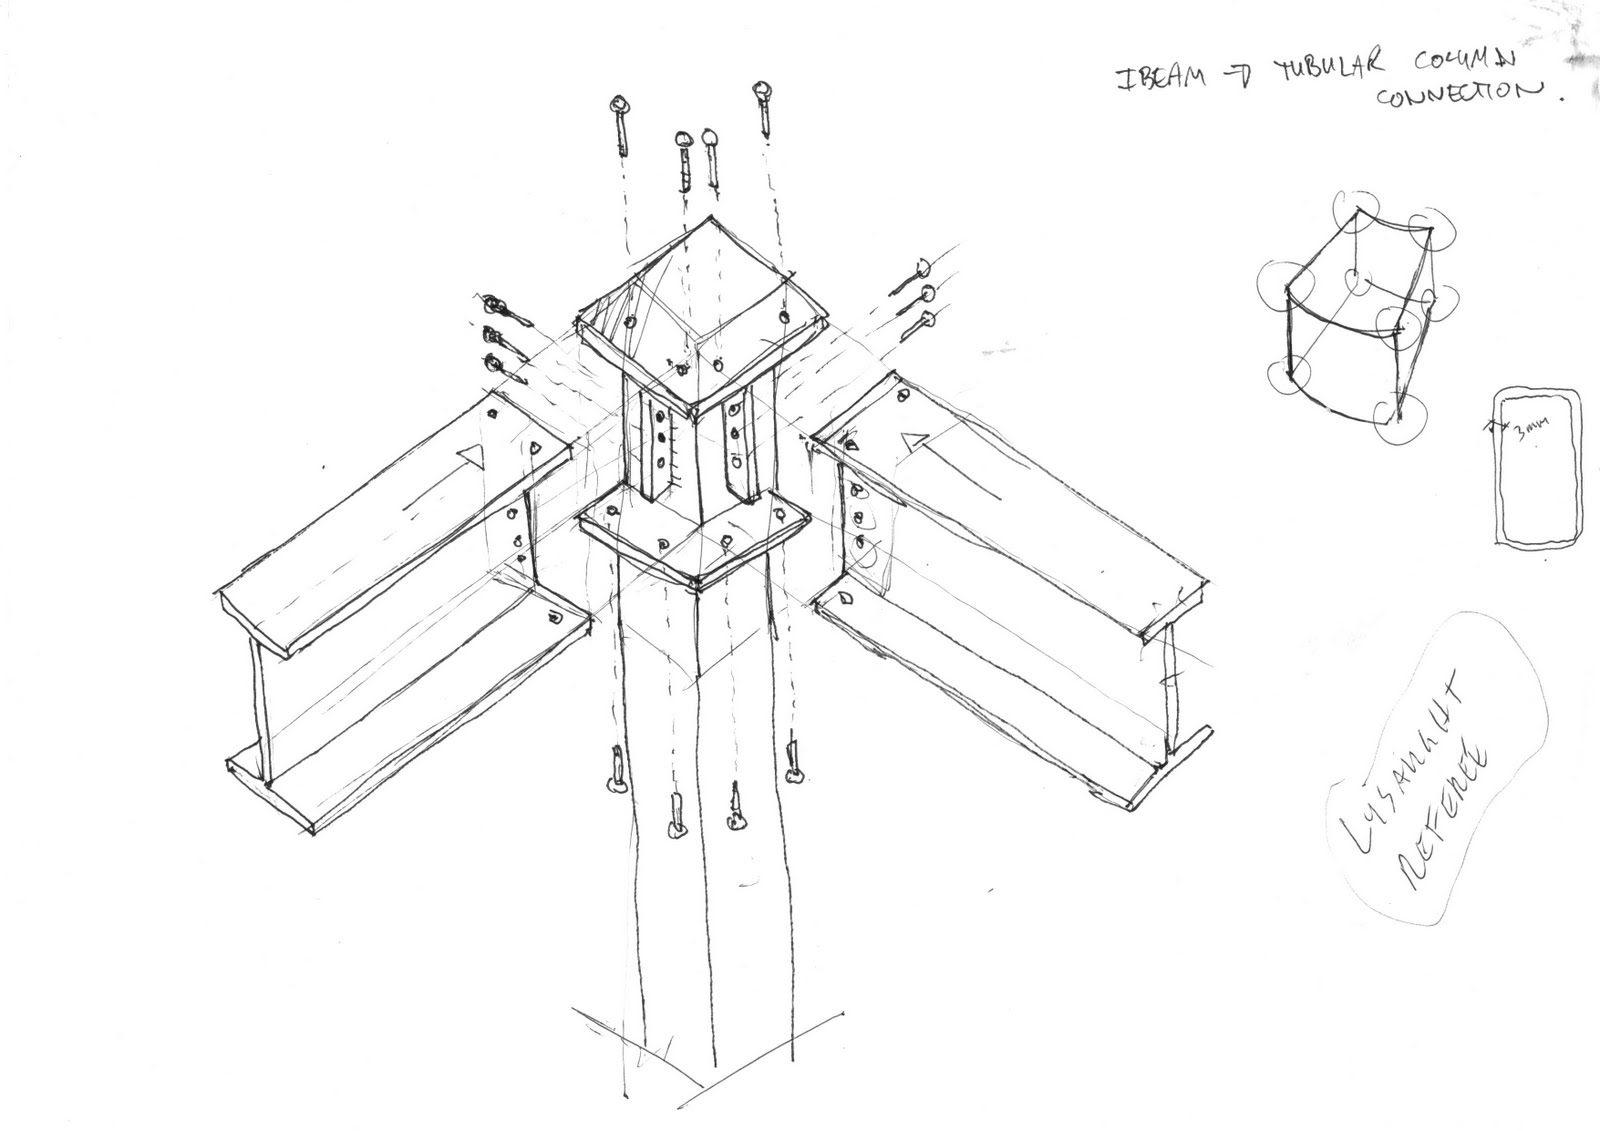 architectural design 510 project 3 development week 13 Types of Drafting Paper finding that this will need many nuts and bolts i think it is justifiable to propose that my design can be welded it can be an assembly of welded rhs and